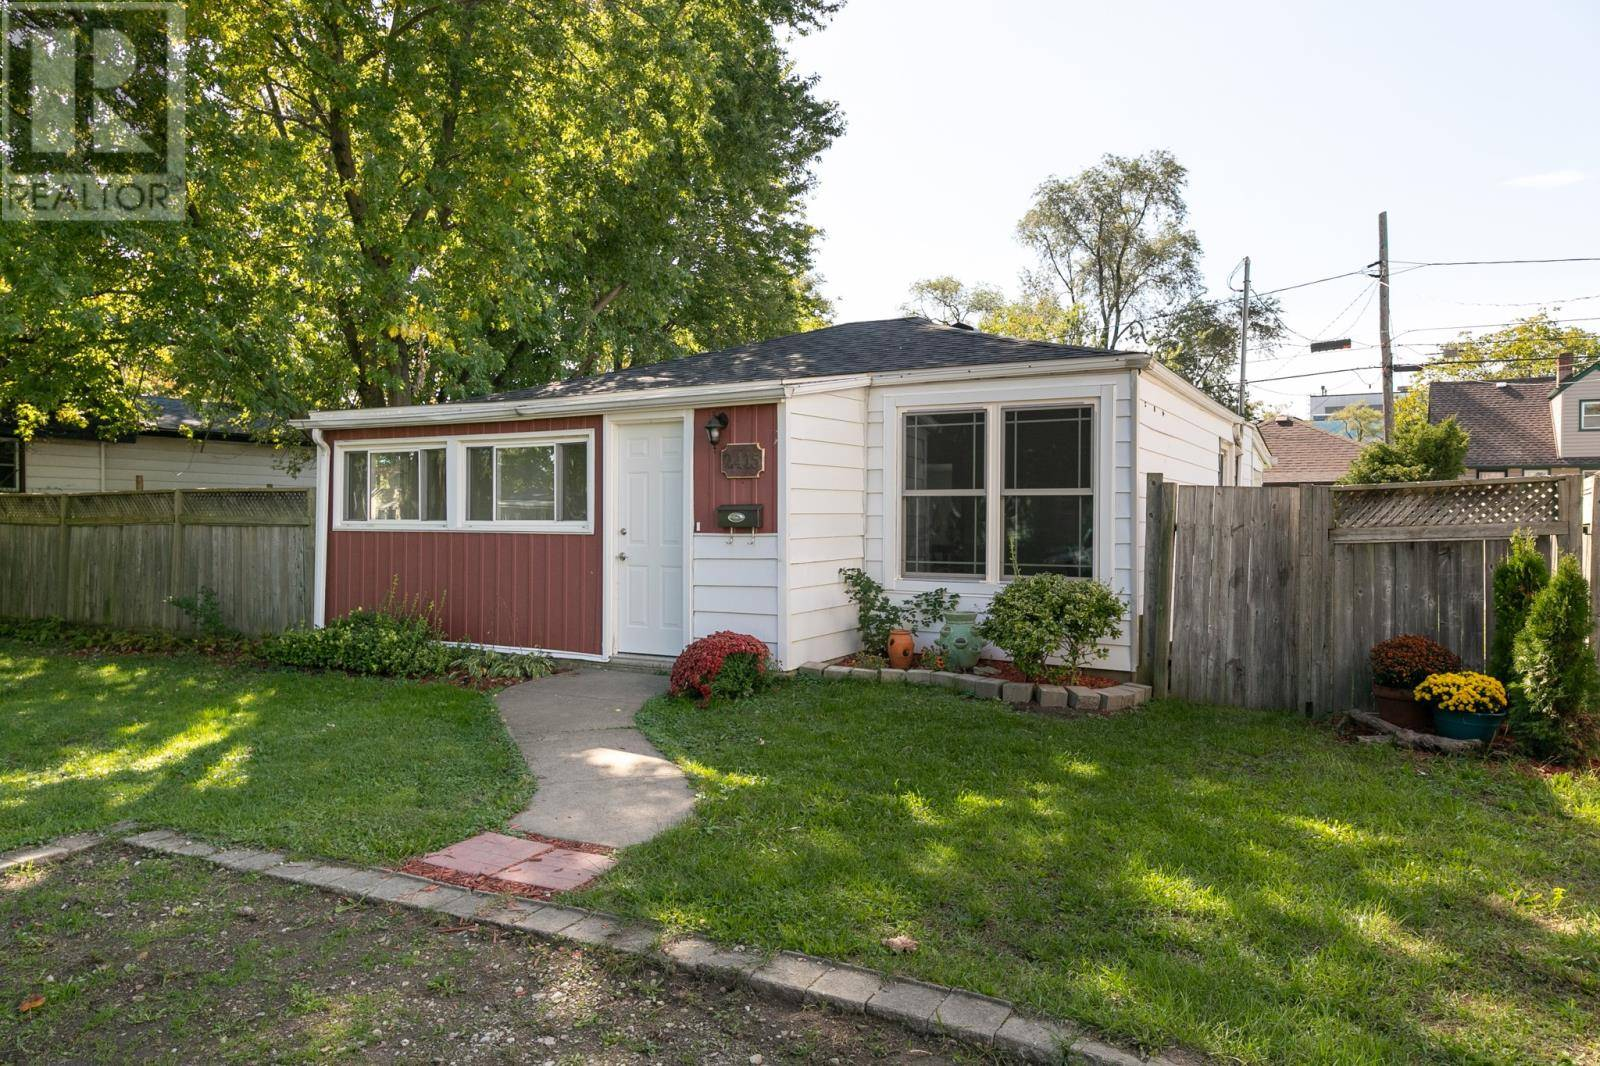 House for sale at 2415 Alexis Rd Windsor Ontario - MLS: 19026958